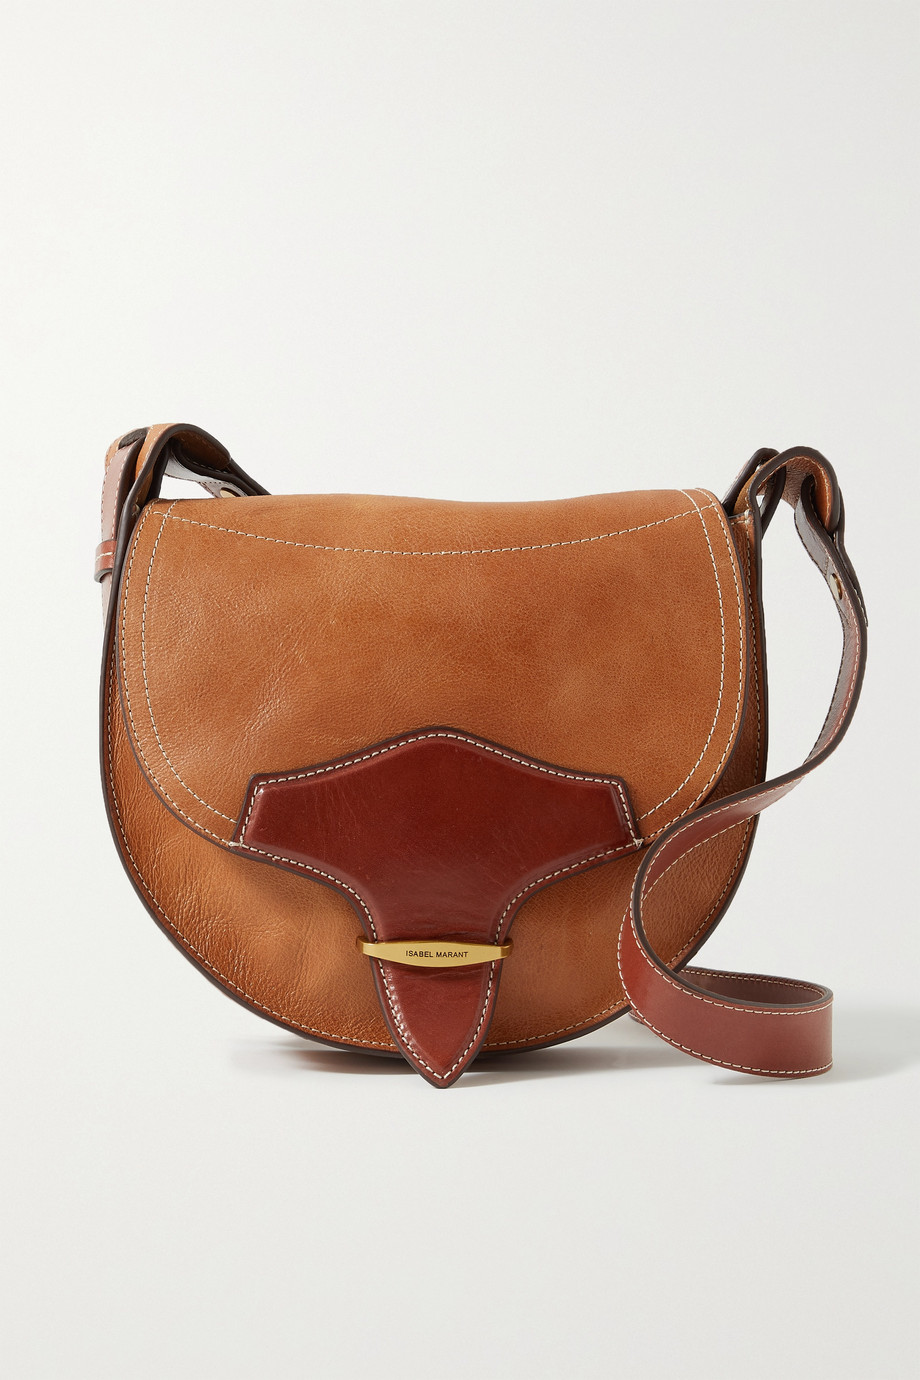 Isabel Marant Botsy two-tone leather shoulder bag